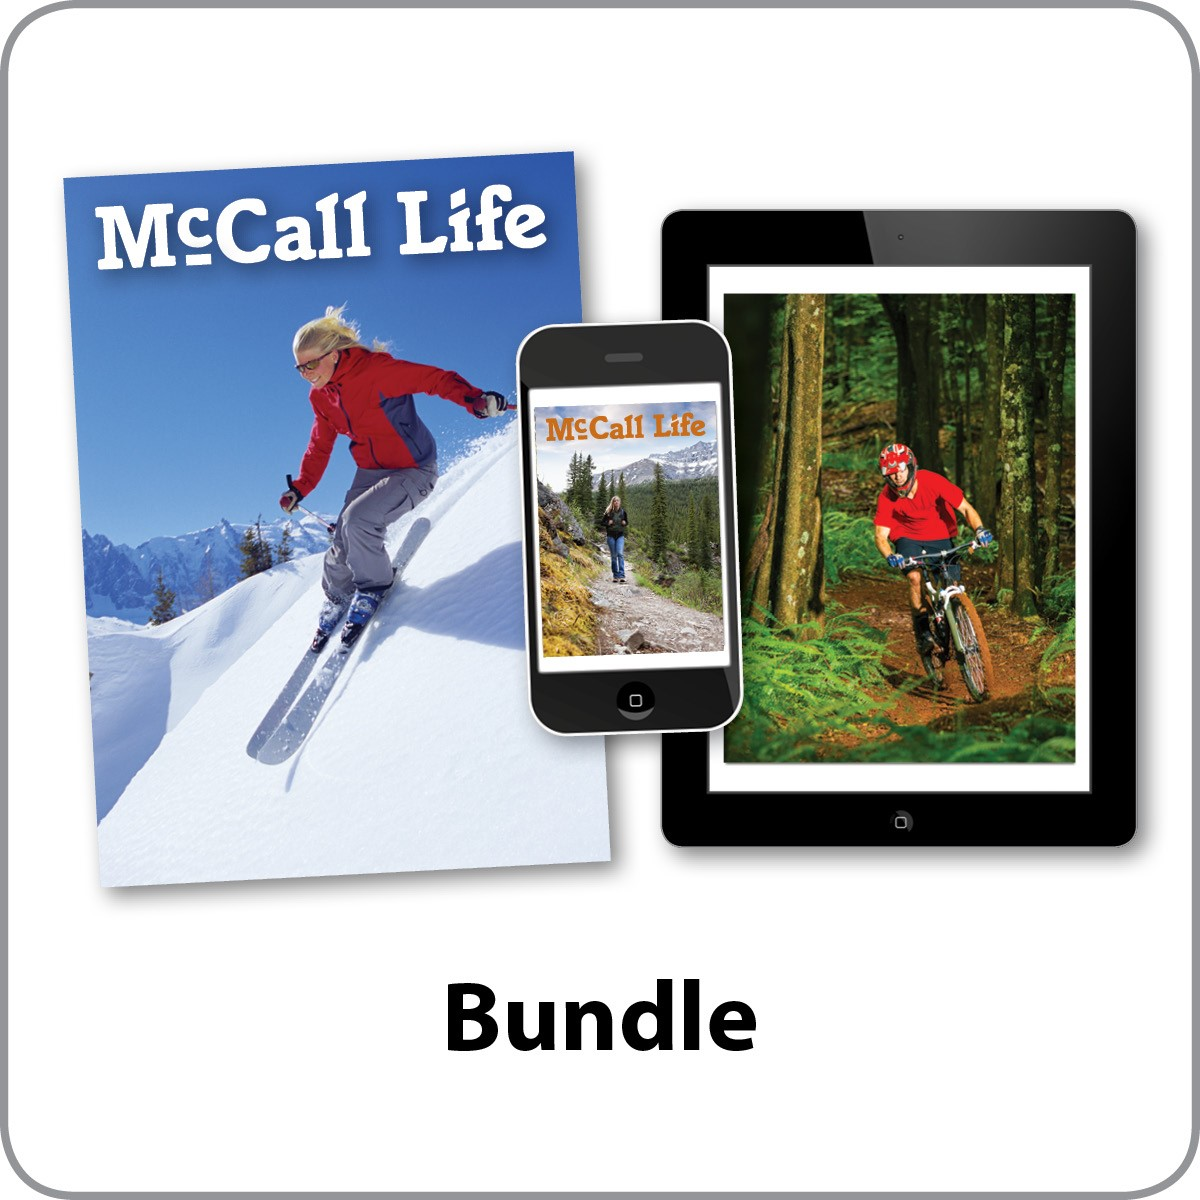 Build Brand Awareness - Advertising in McCall Life puts your brand FRONT and CENTER in front of the largest, most-engaged audience of buyer's anywhere.